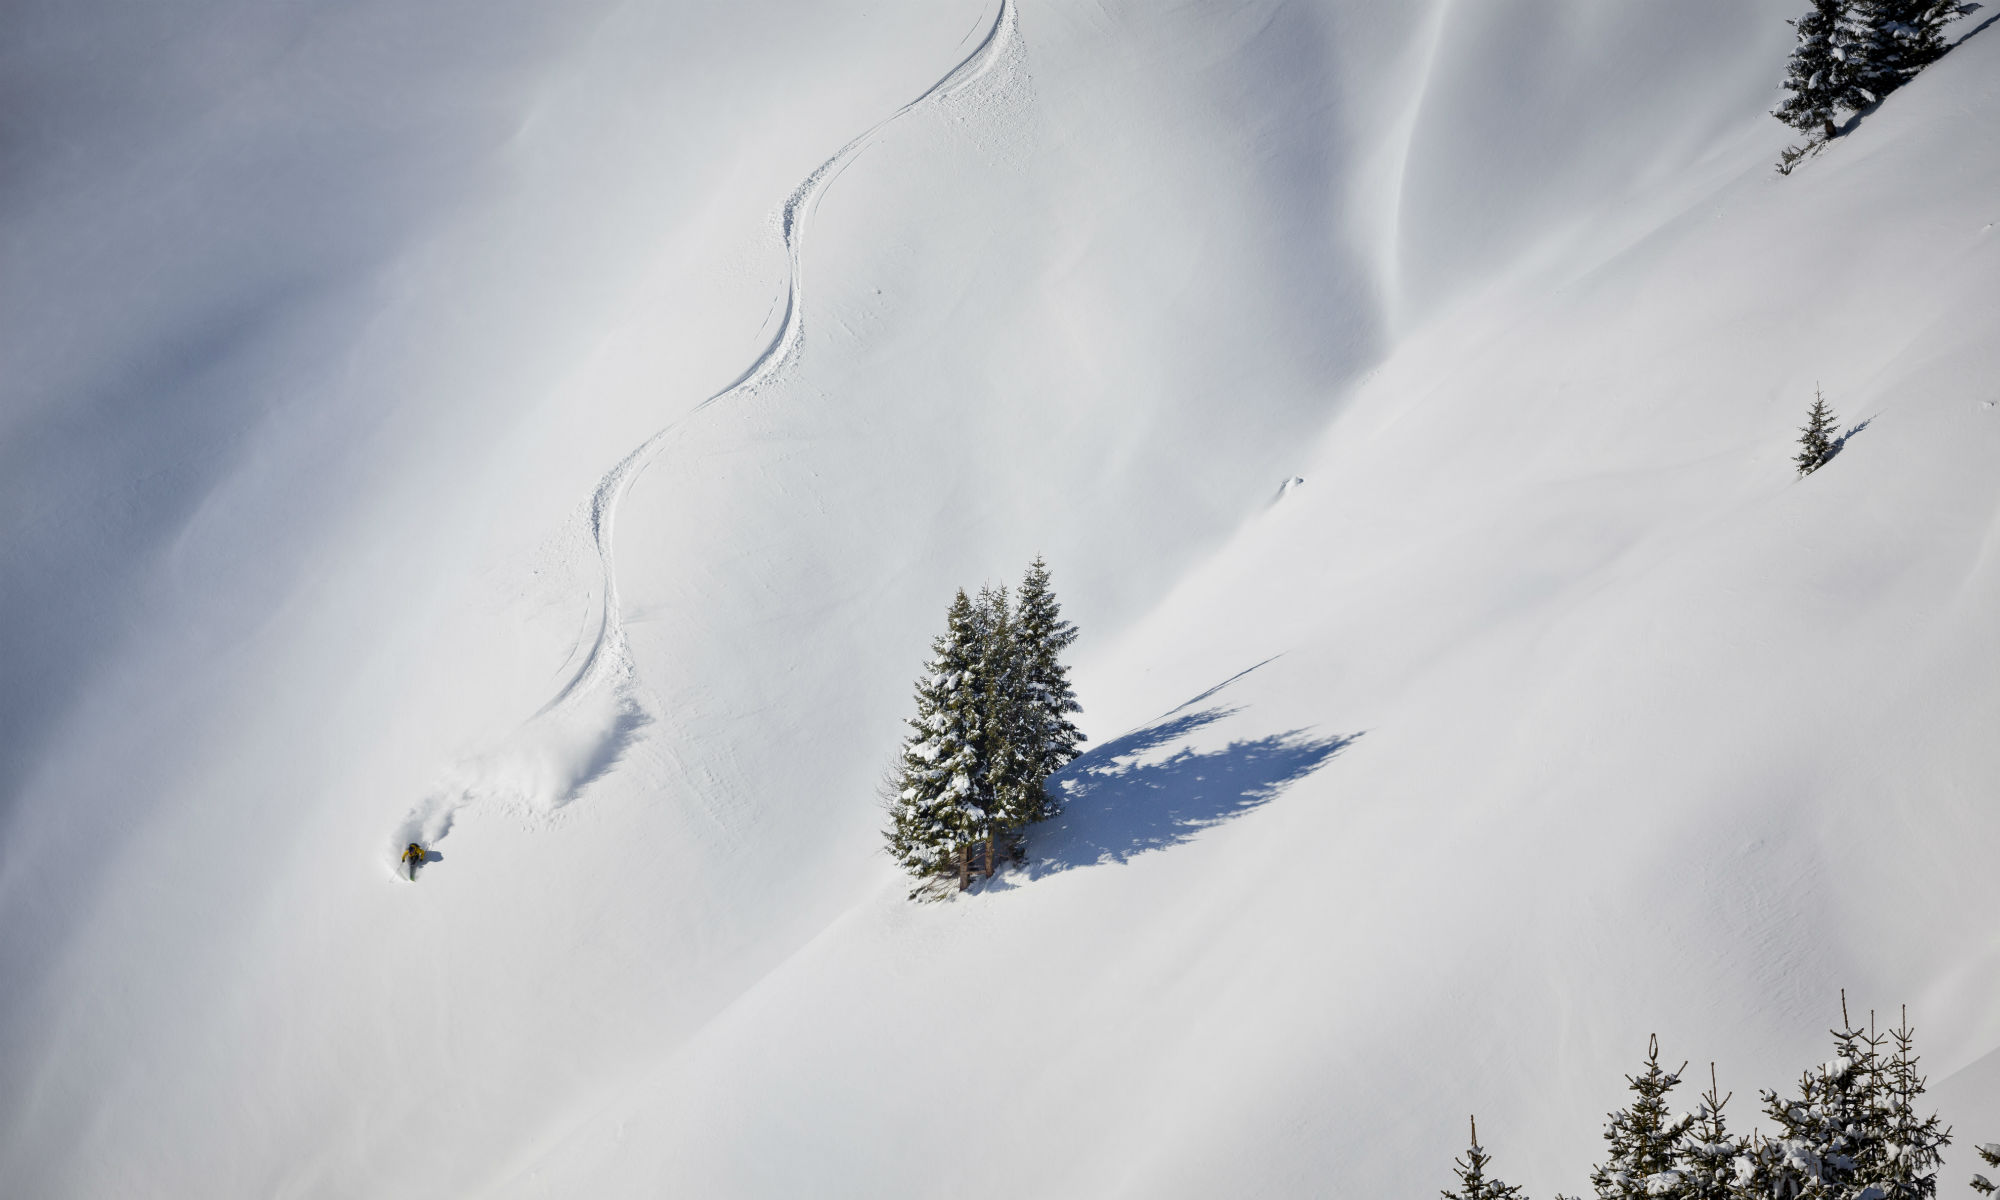 A freeride skier drawing turns into powder snow in Fieberbrunn.